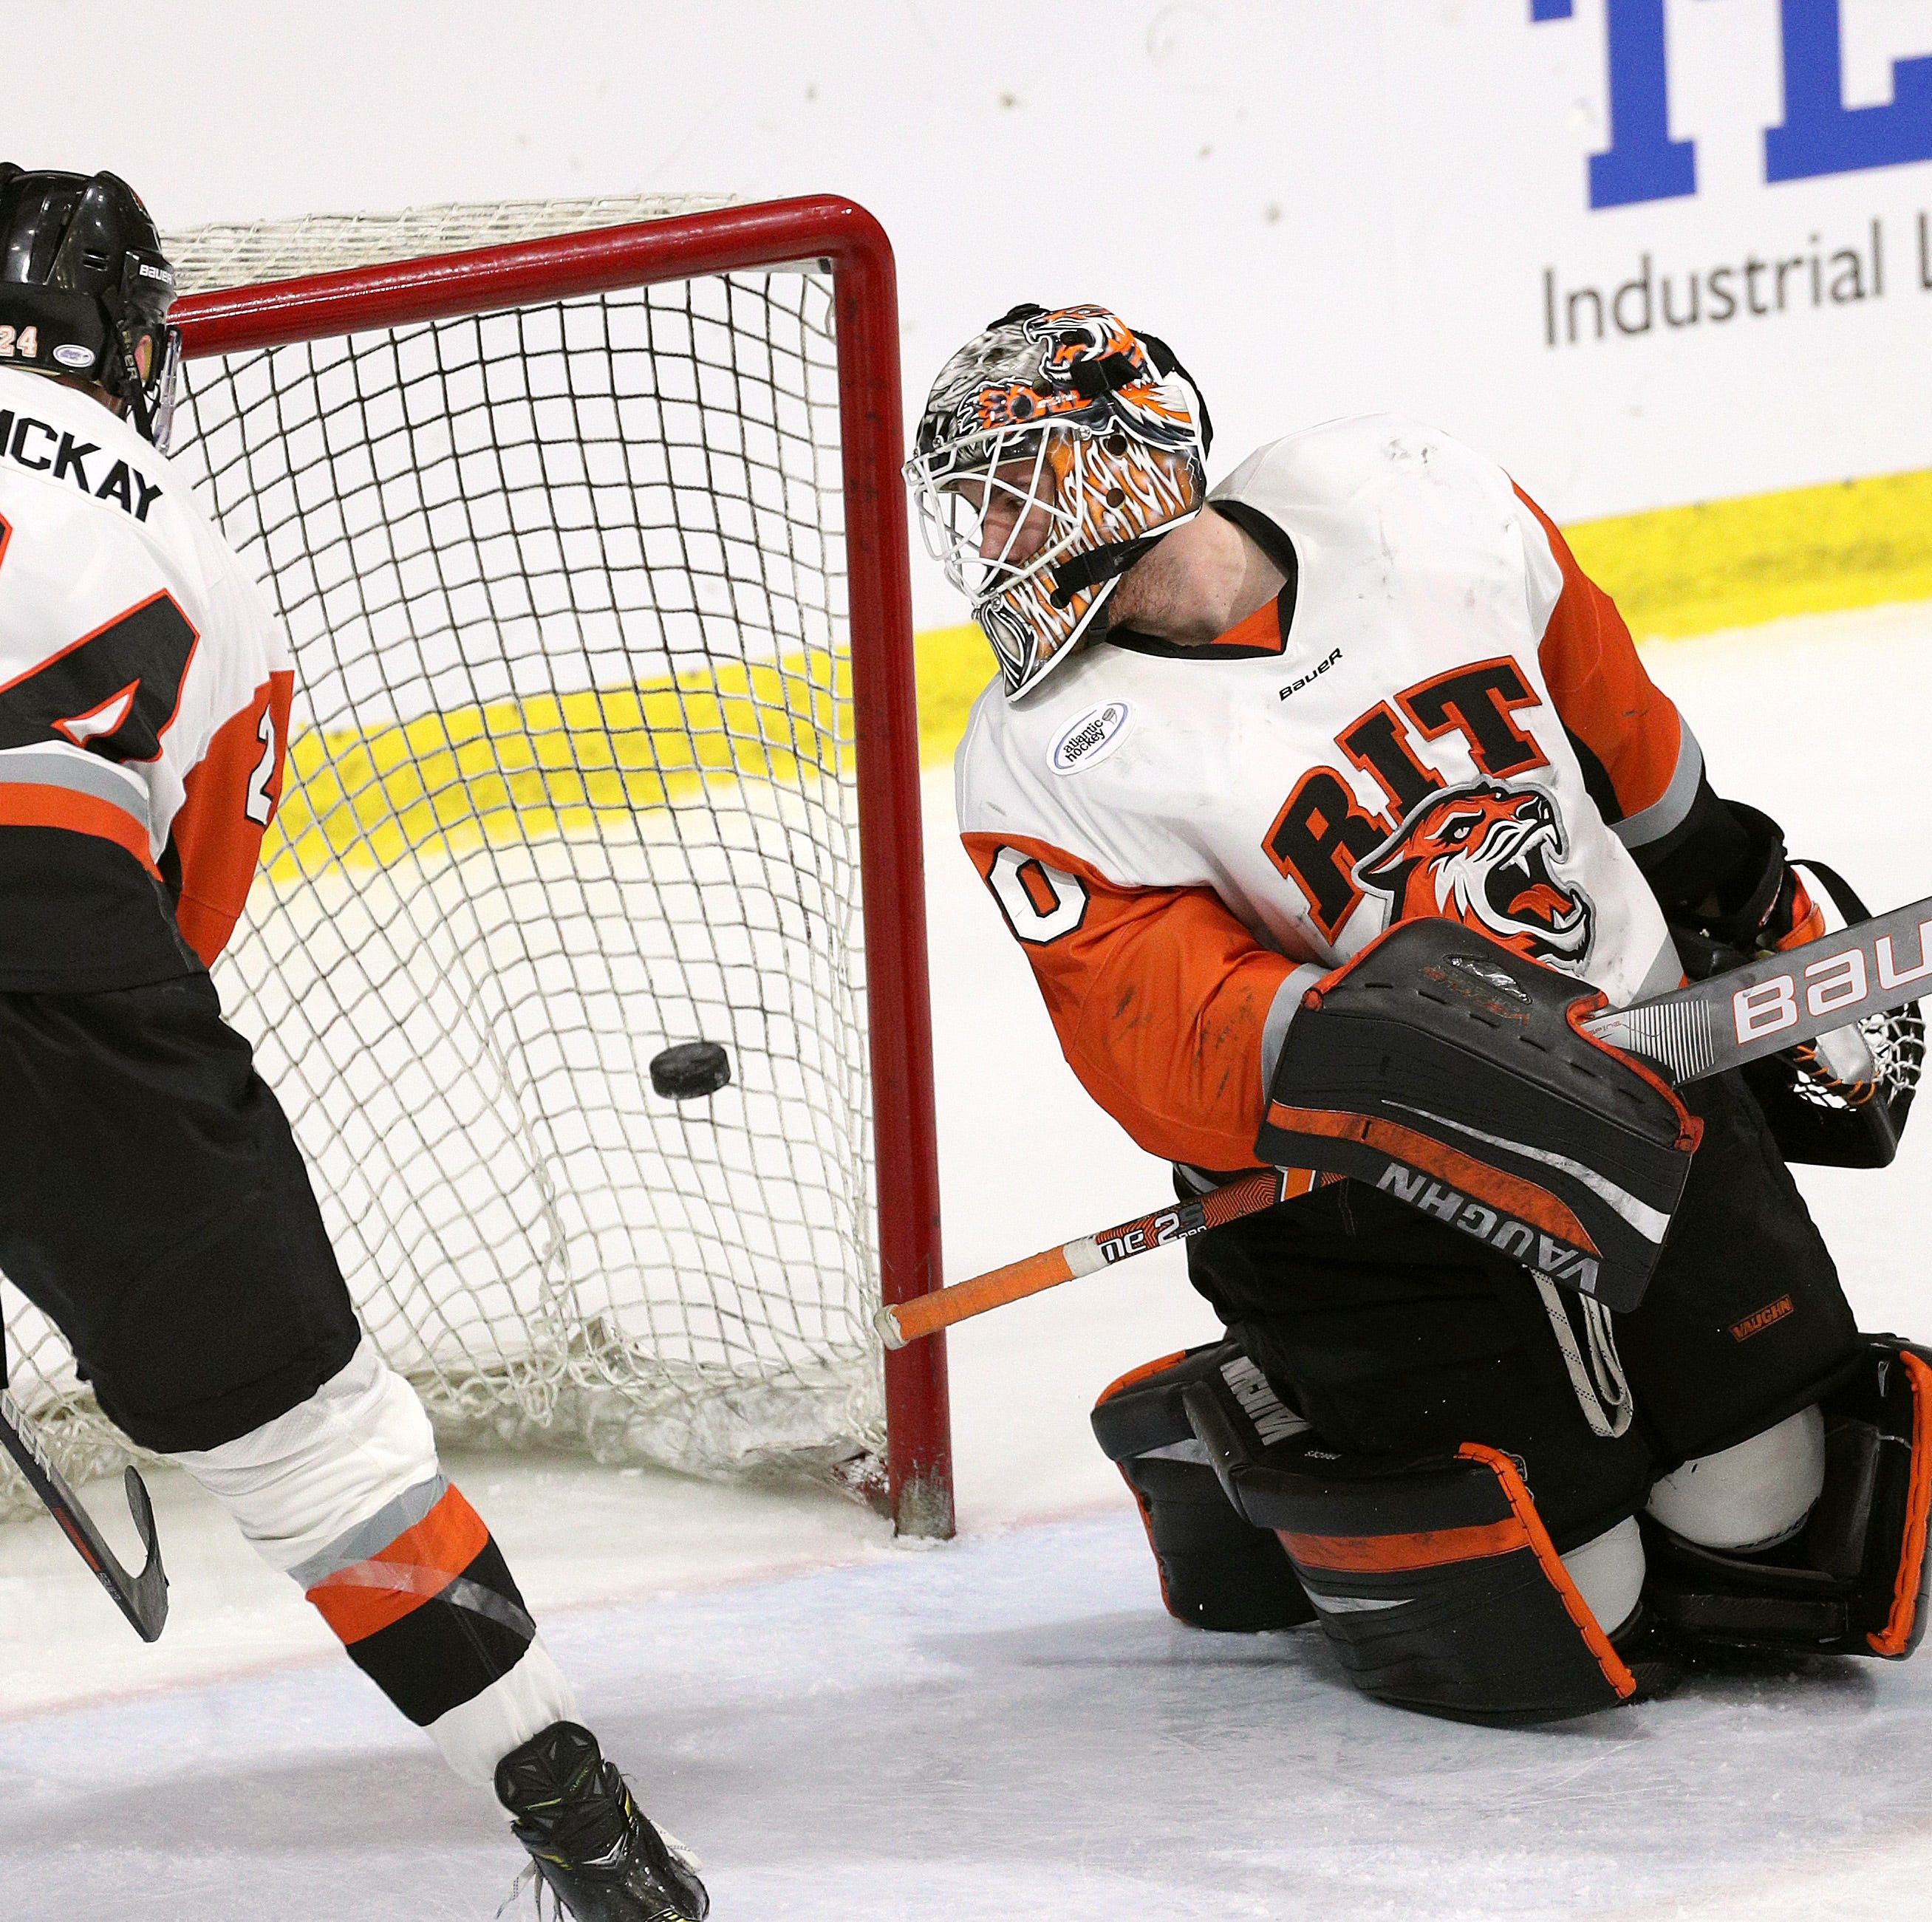 RIT drops 1-0 overtime heartbreaker to Niagara in Atlantic Hockey semifinals